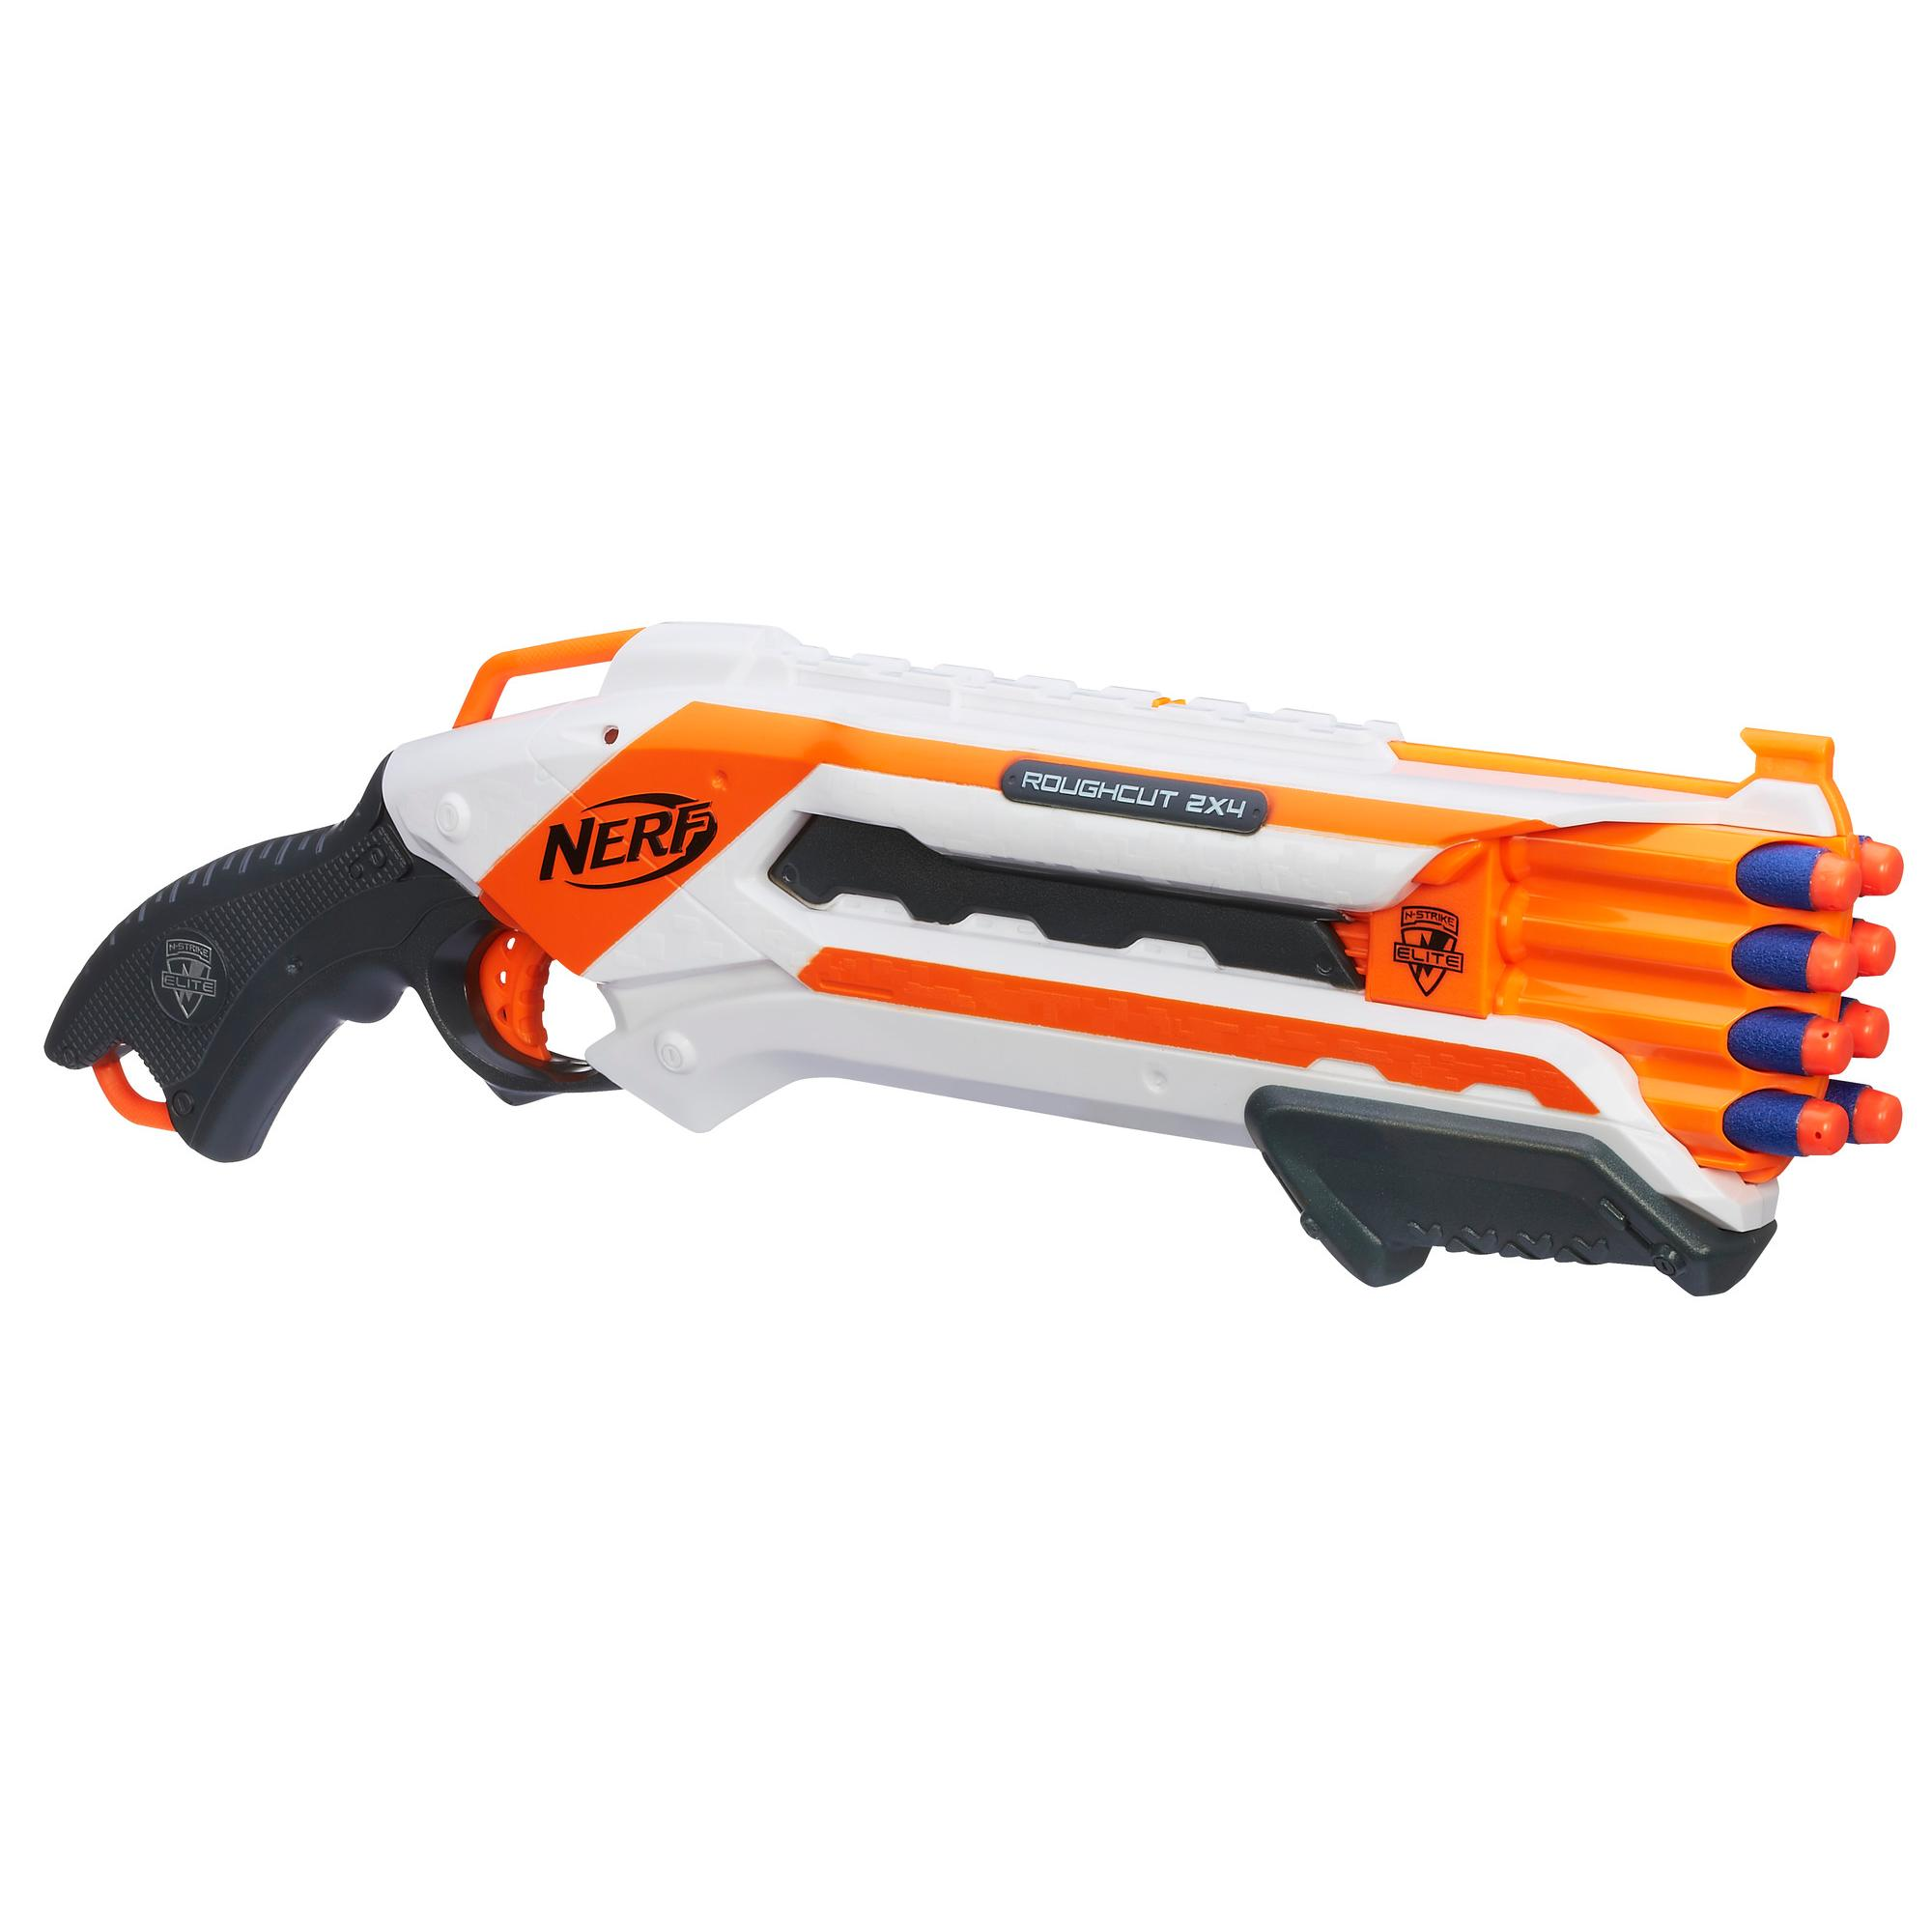 NERF Elite Roughcut 2 x 4